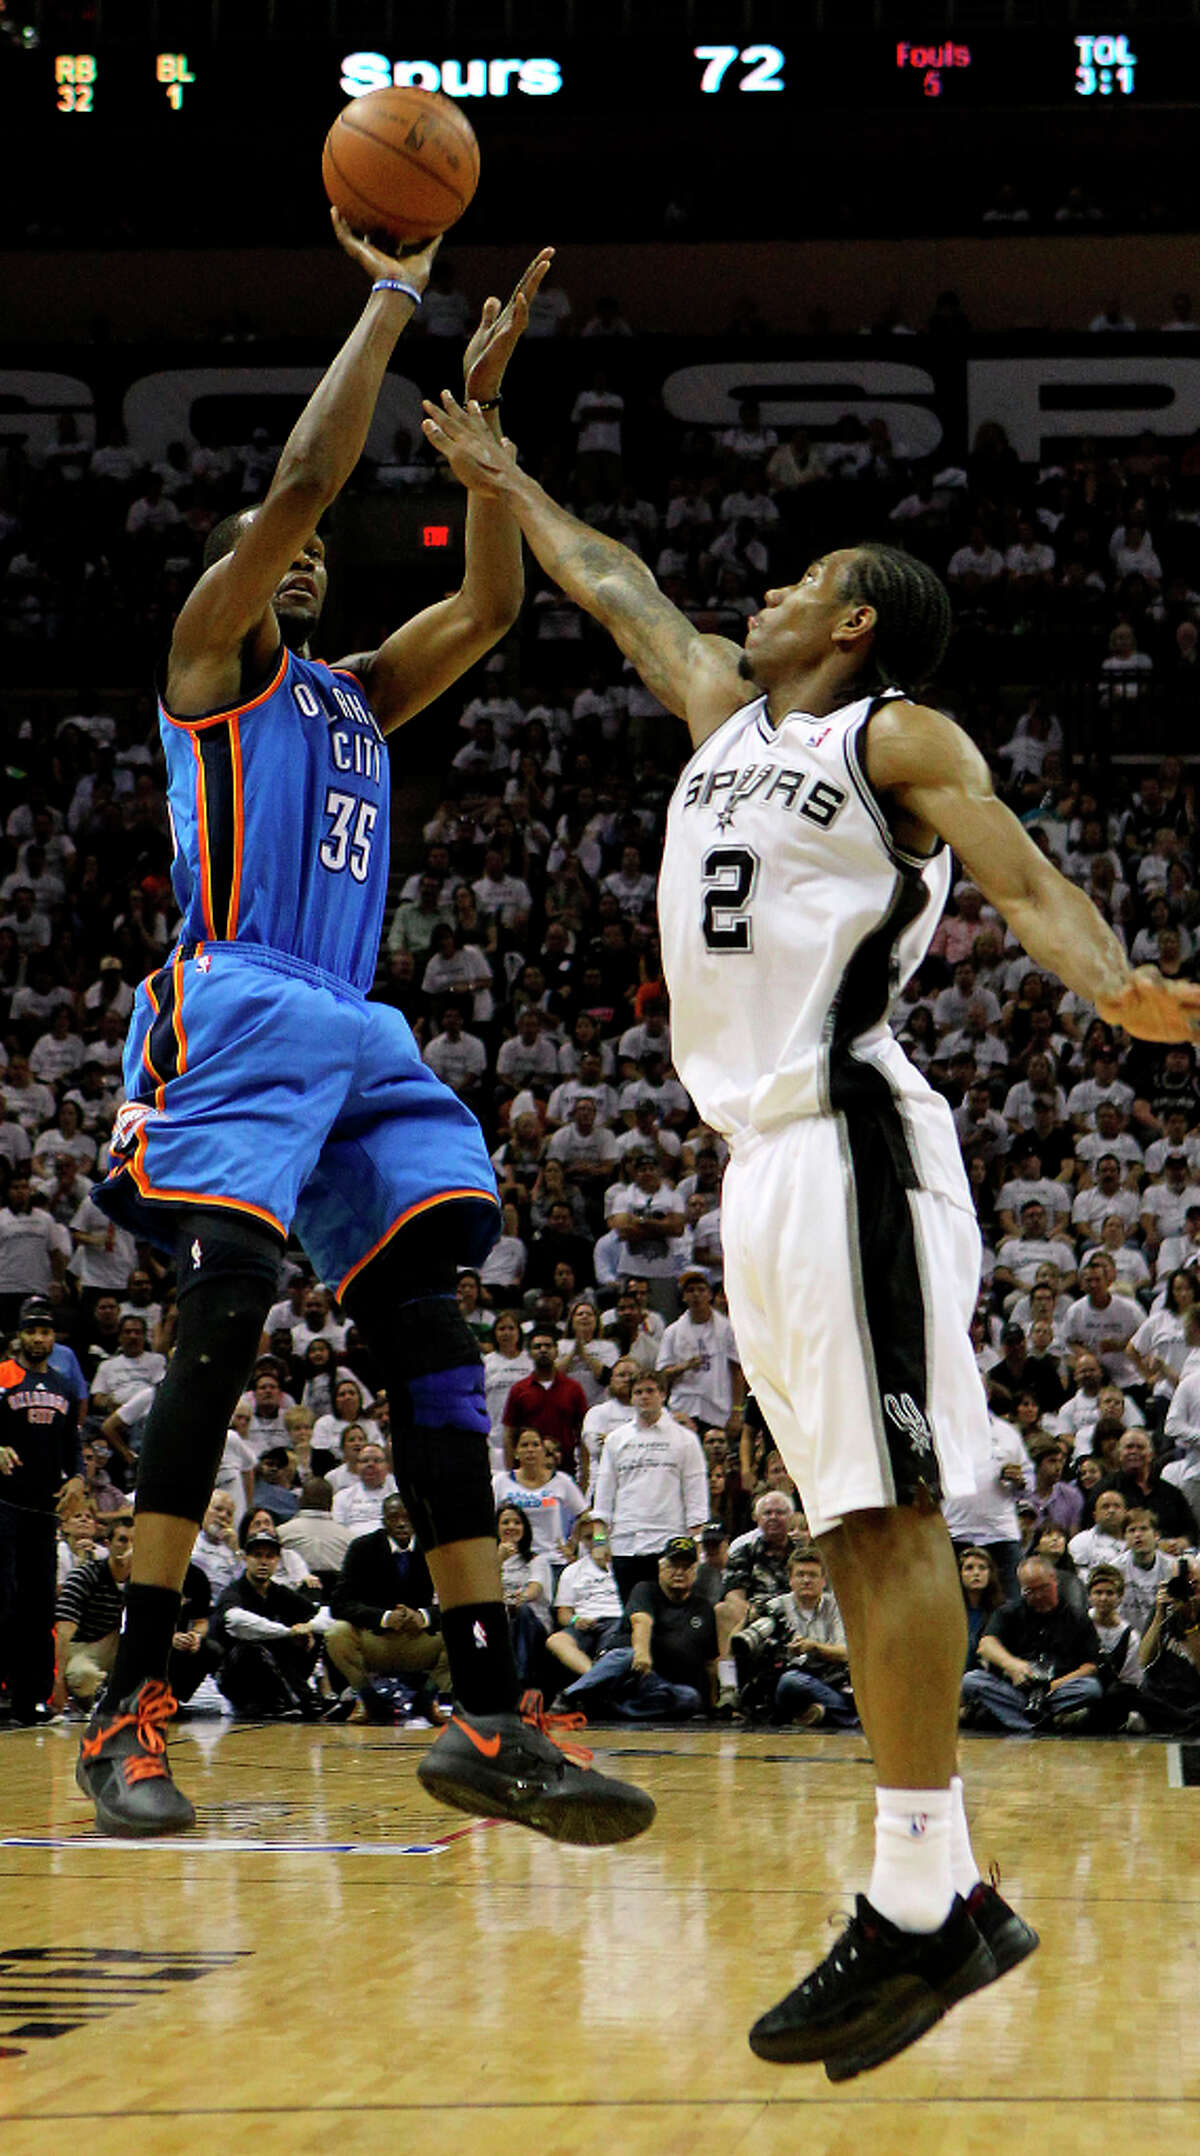 Thunder's Kevin Durant (35) shoots over Spurs' Kawhi Leonard (2) during the second half of Game 5 of the NBA Western Conference Finals in San Antonio, Texas on Monday, June 4, 2012.